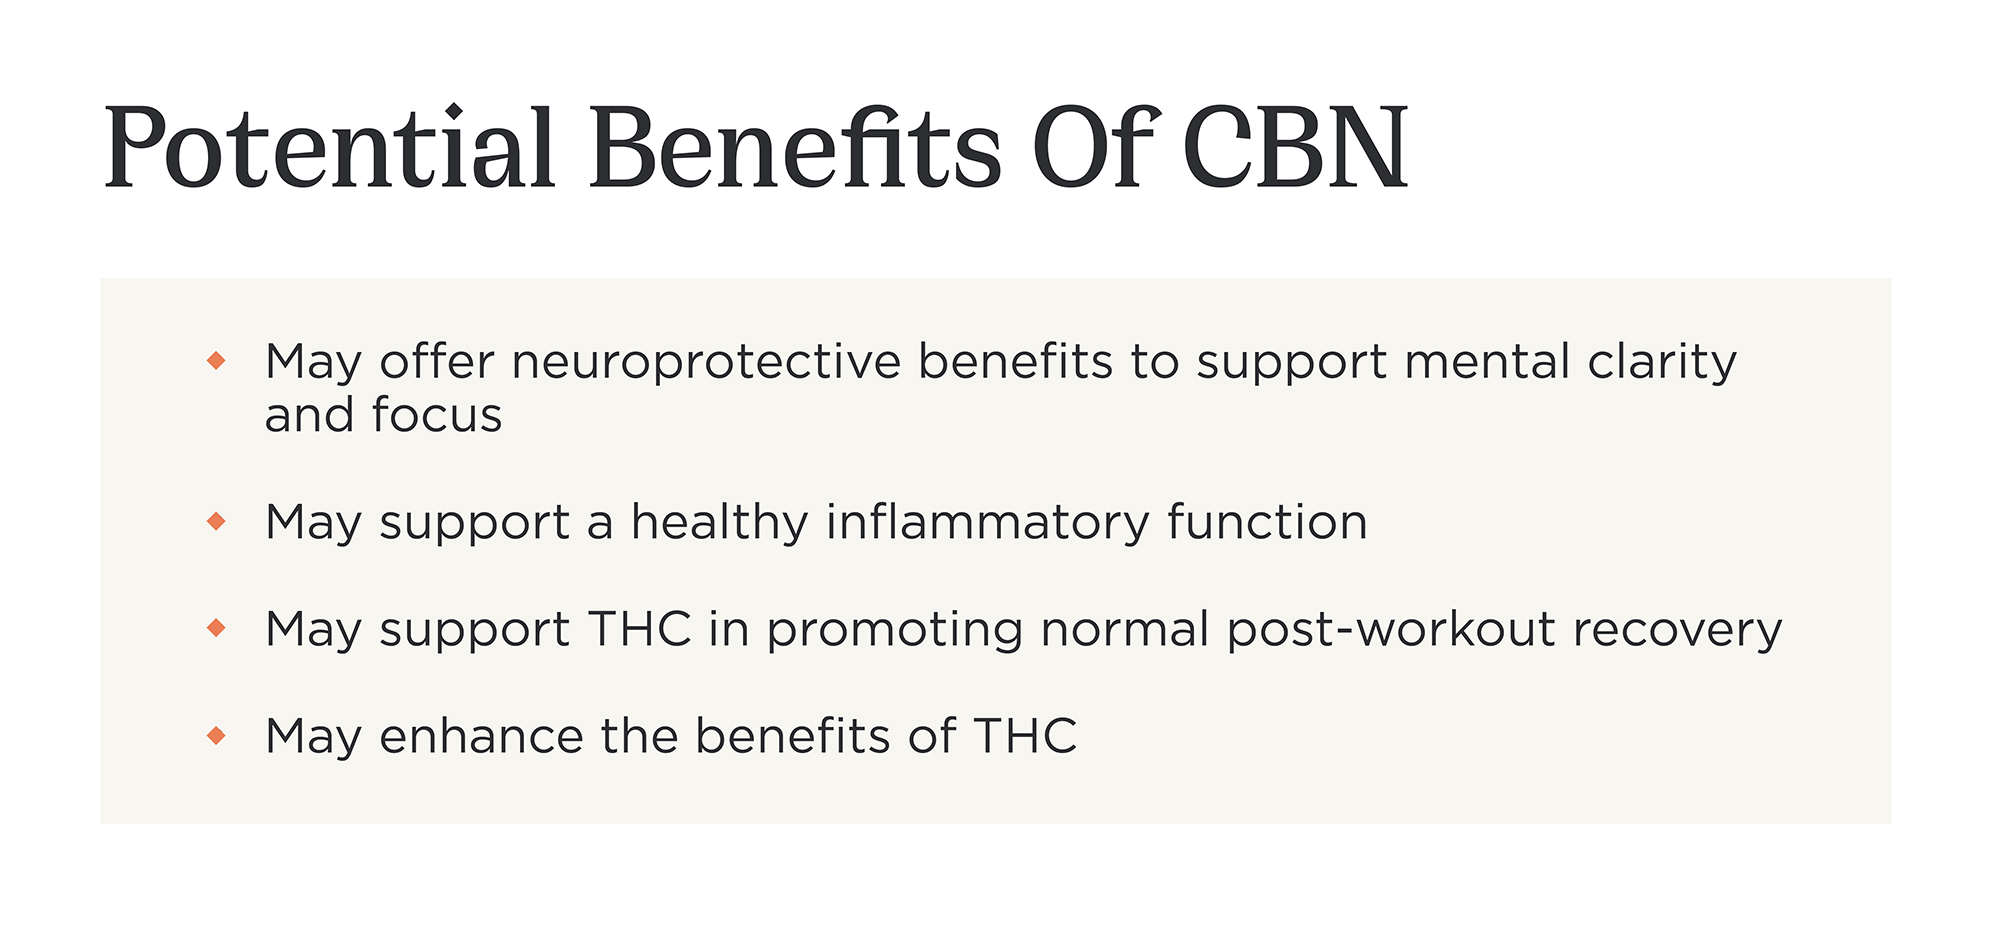 What Are The Potential Benefits Of CBN?